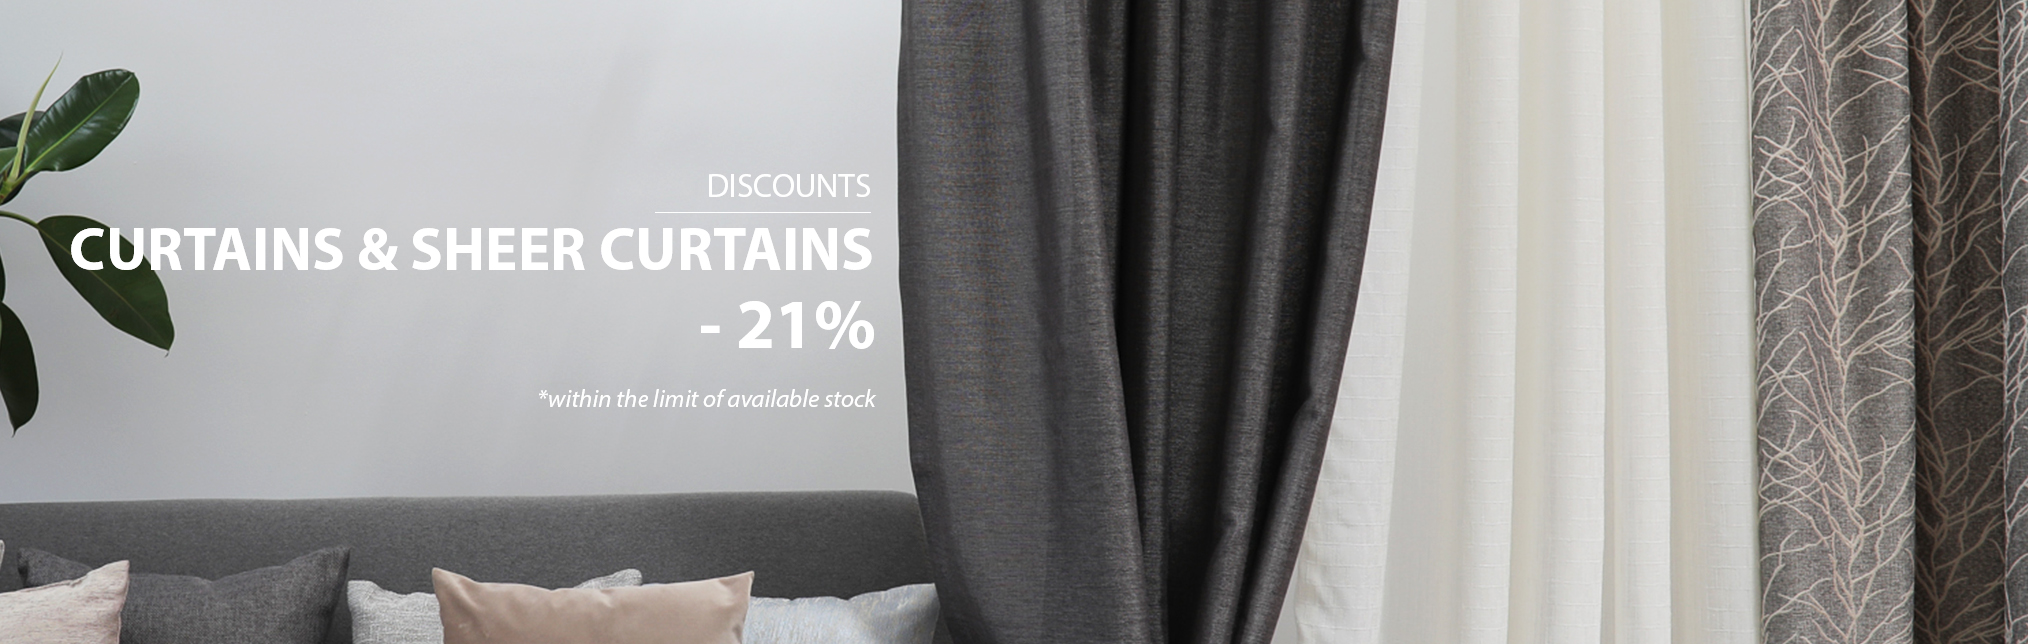 Promotion May-June 2018 - Curtains and Sheer Curtains